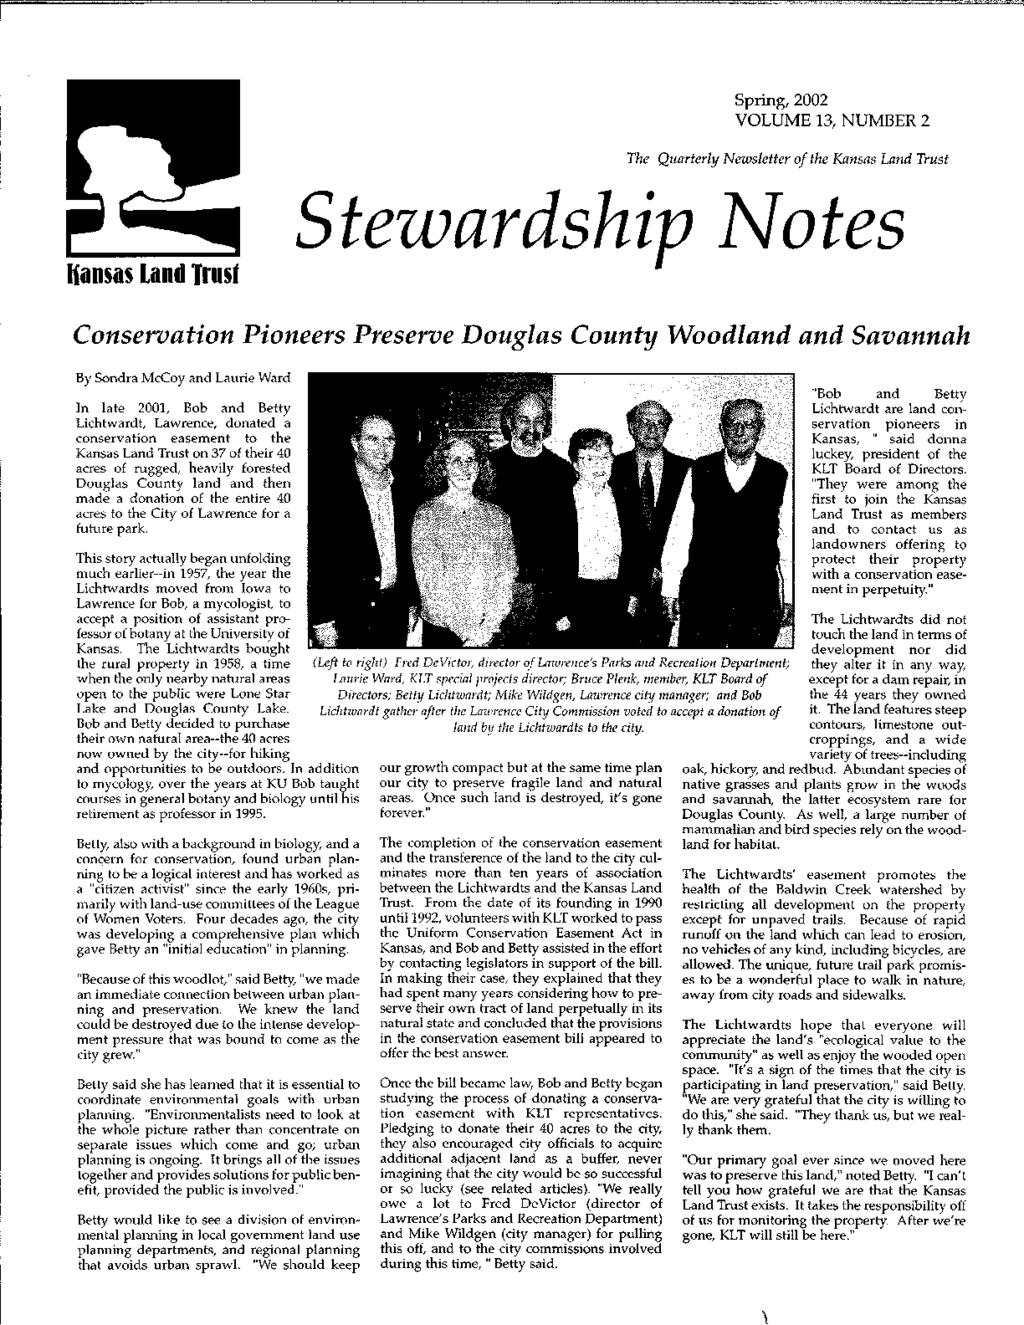 Spring, 2002 VOLUME 13, NUMBER 2 The Quarterly Newsletter of the Kansas Land Trust Hansas Land Trus' Stezvardship }Jotes Conservation Pioneers Preserve Douglas County Woodland and Savannah By Sondra